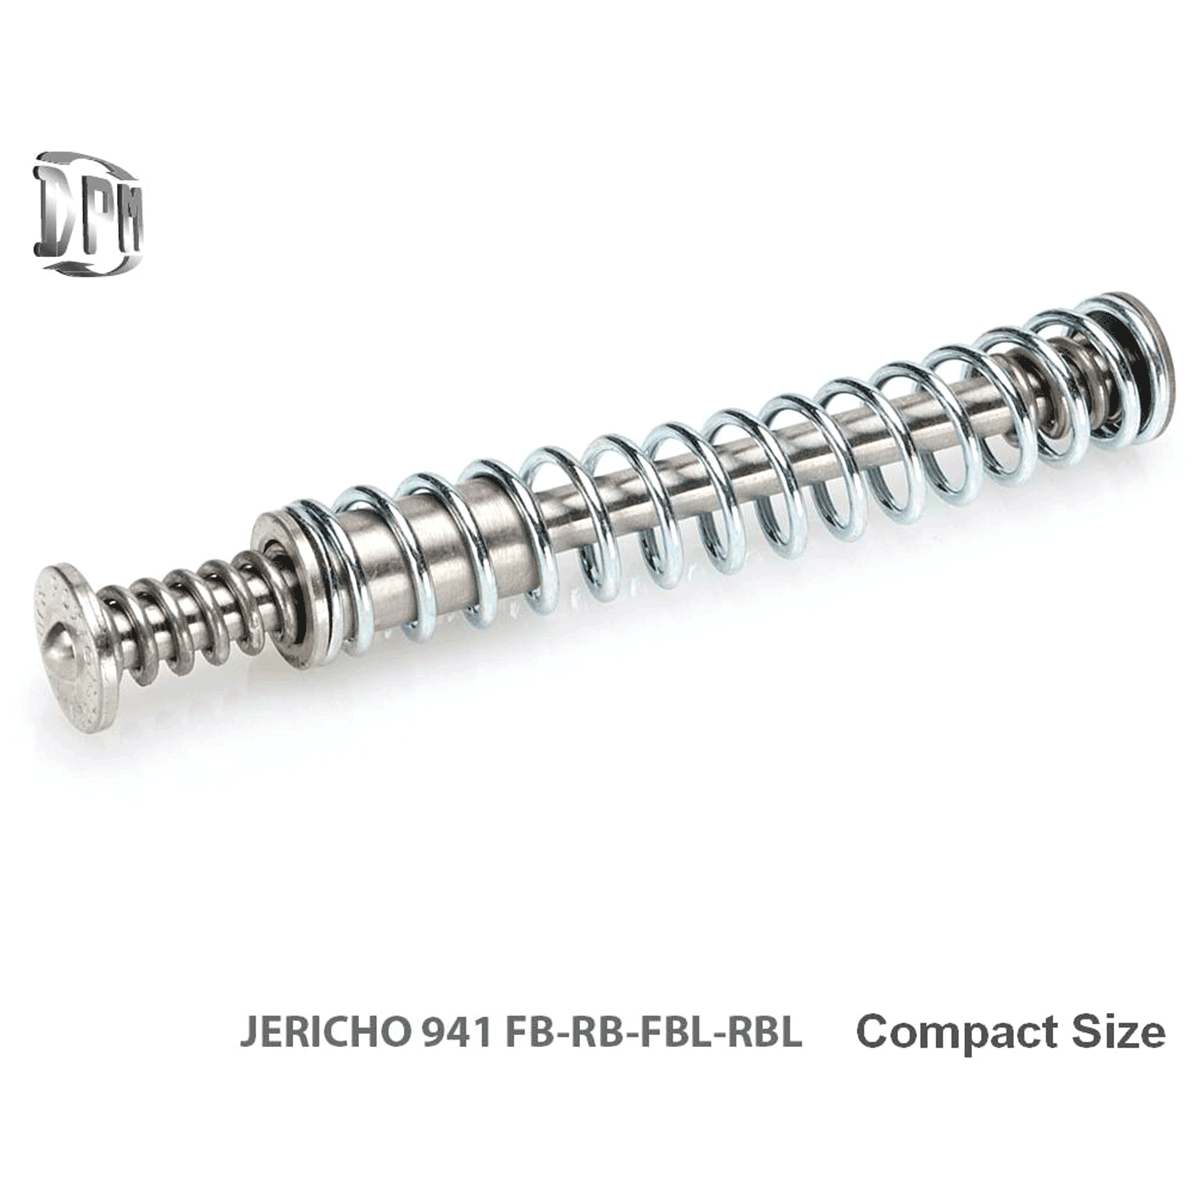 DPM Recoil Spring System Jericho 941 Compact FBL FB RB FBL Compact RBL Rod Length 75mm/2.95